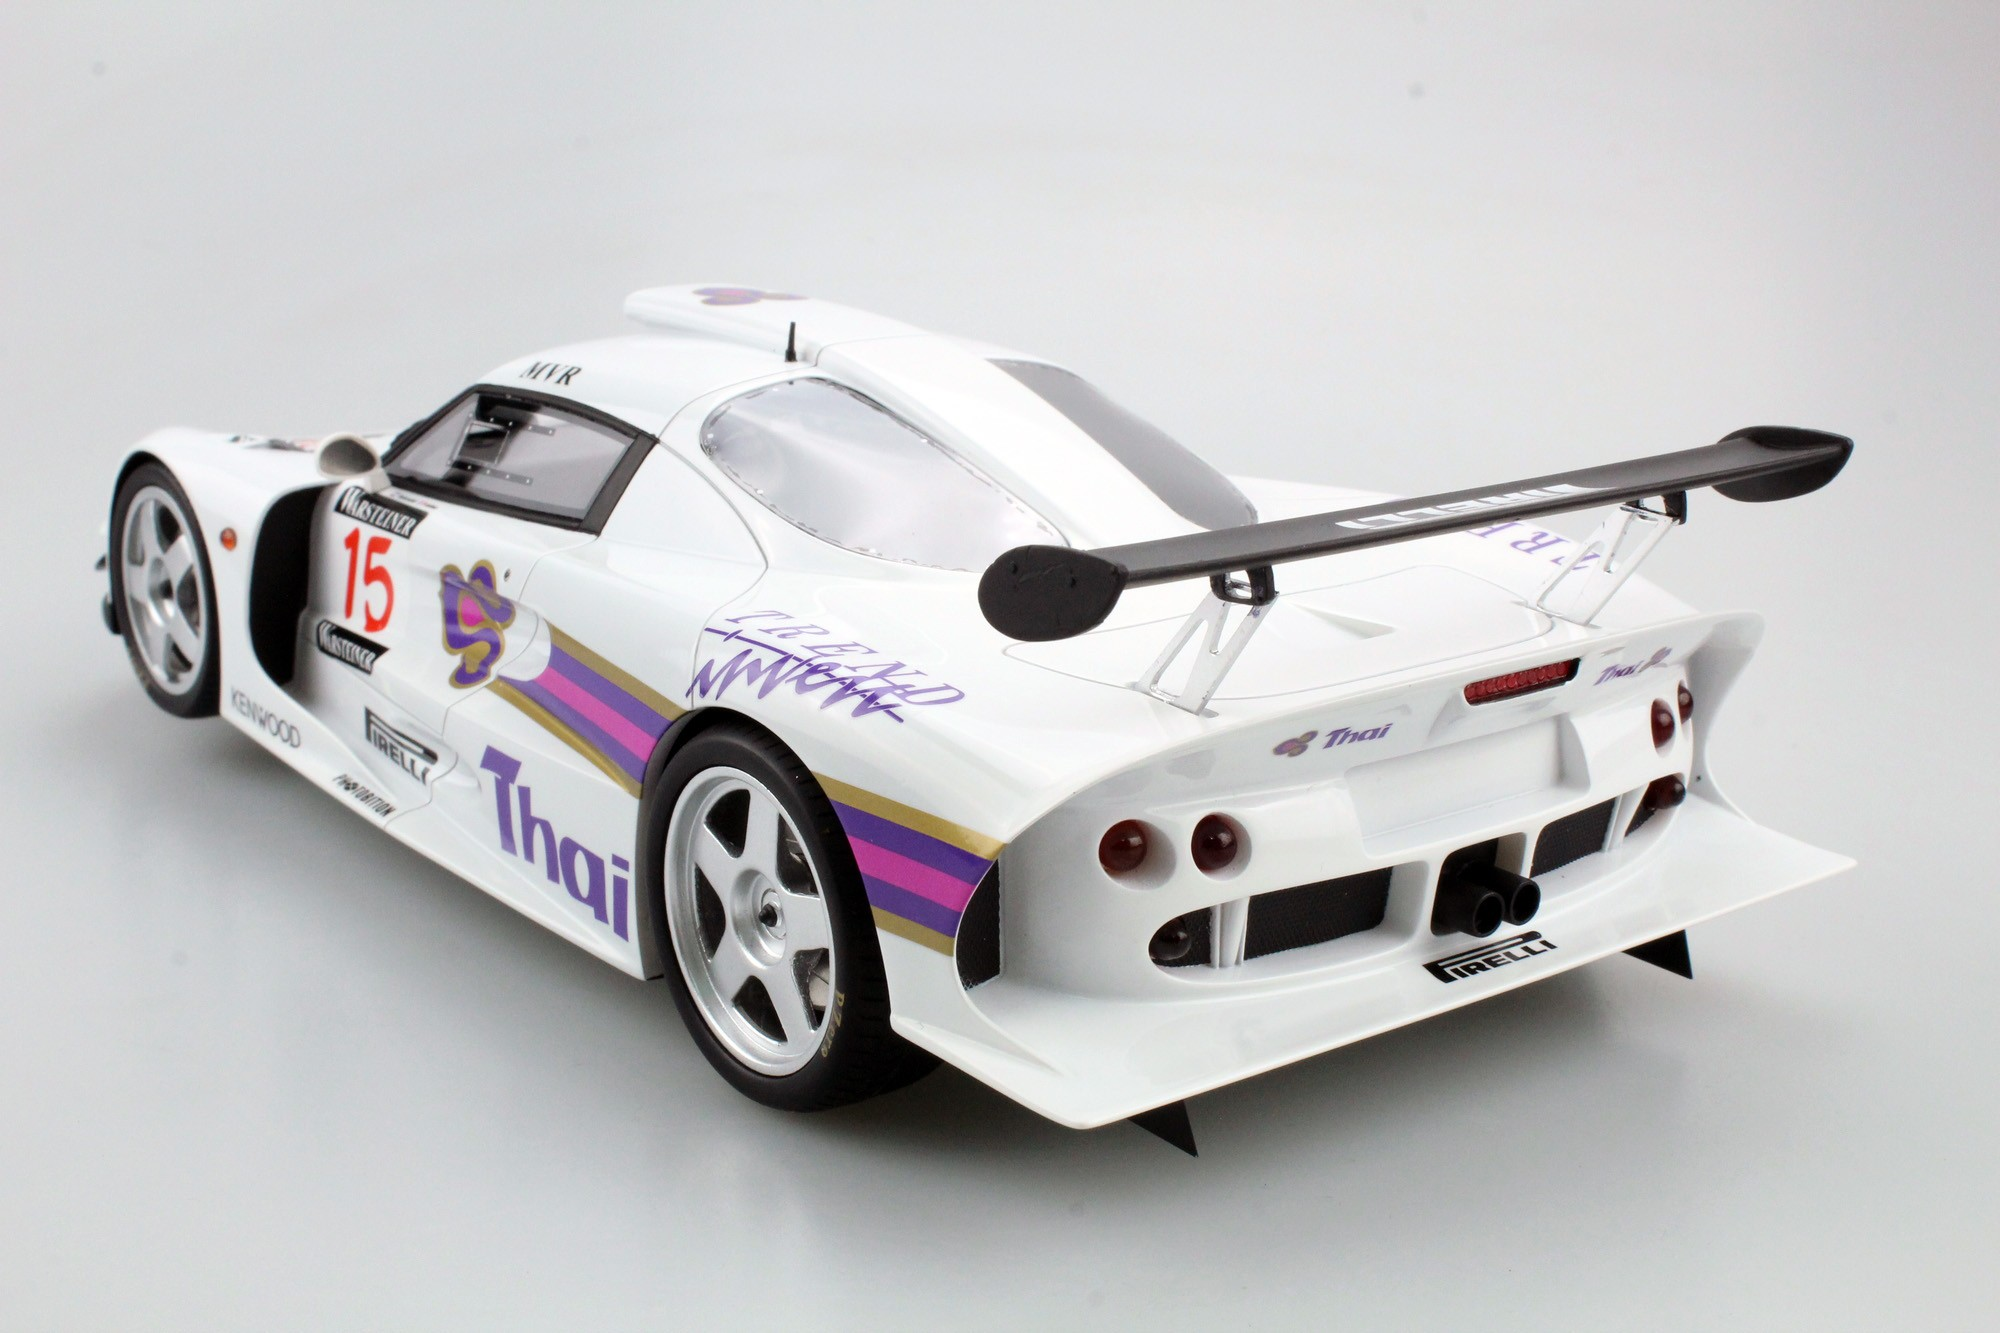 Top Marques Collectibles Lotus Elise Gt1 Thai Racing Pre